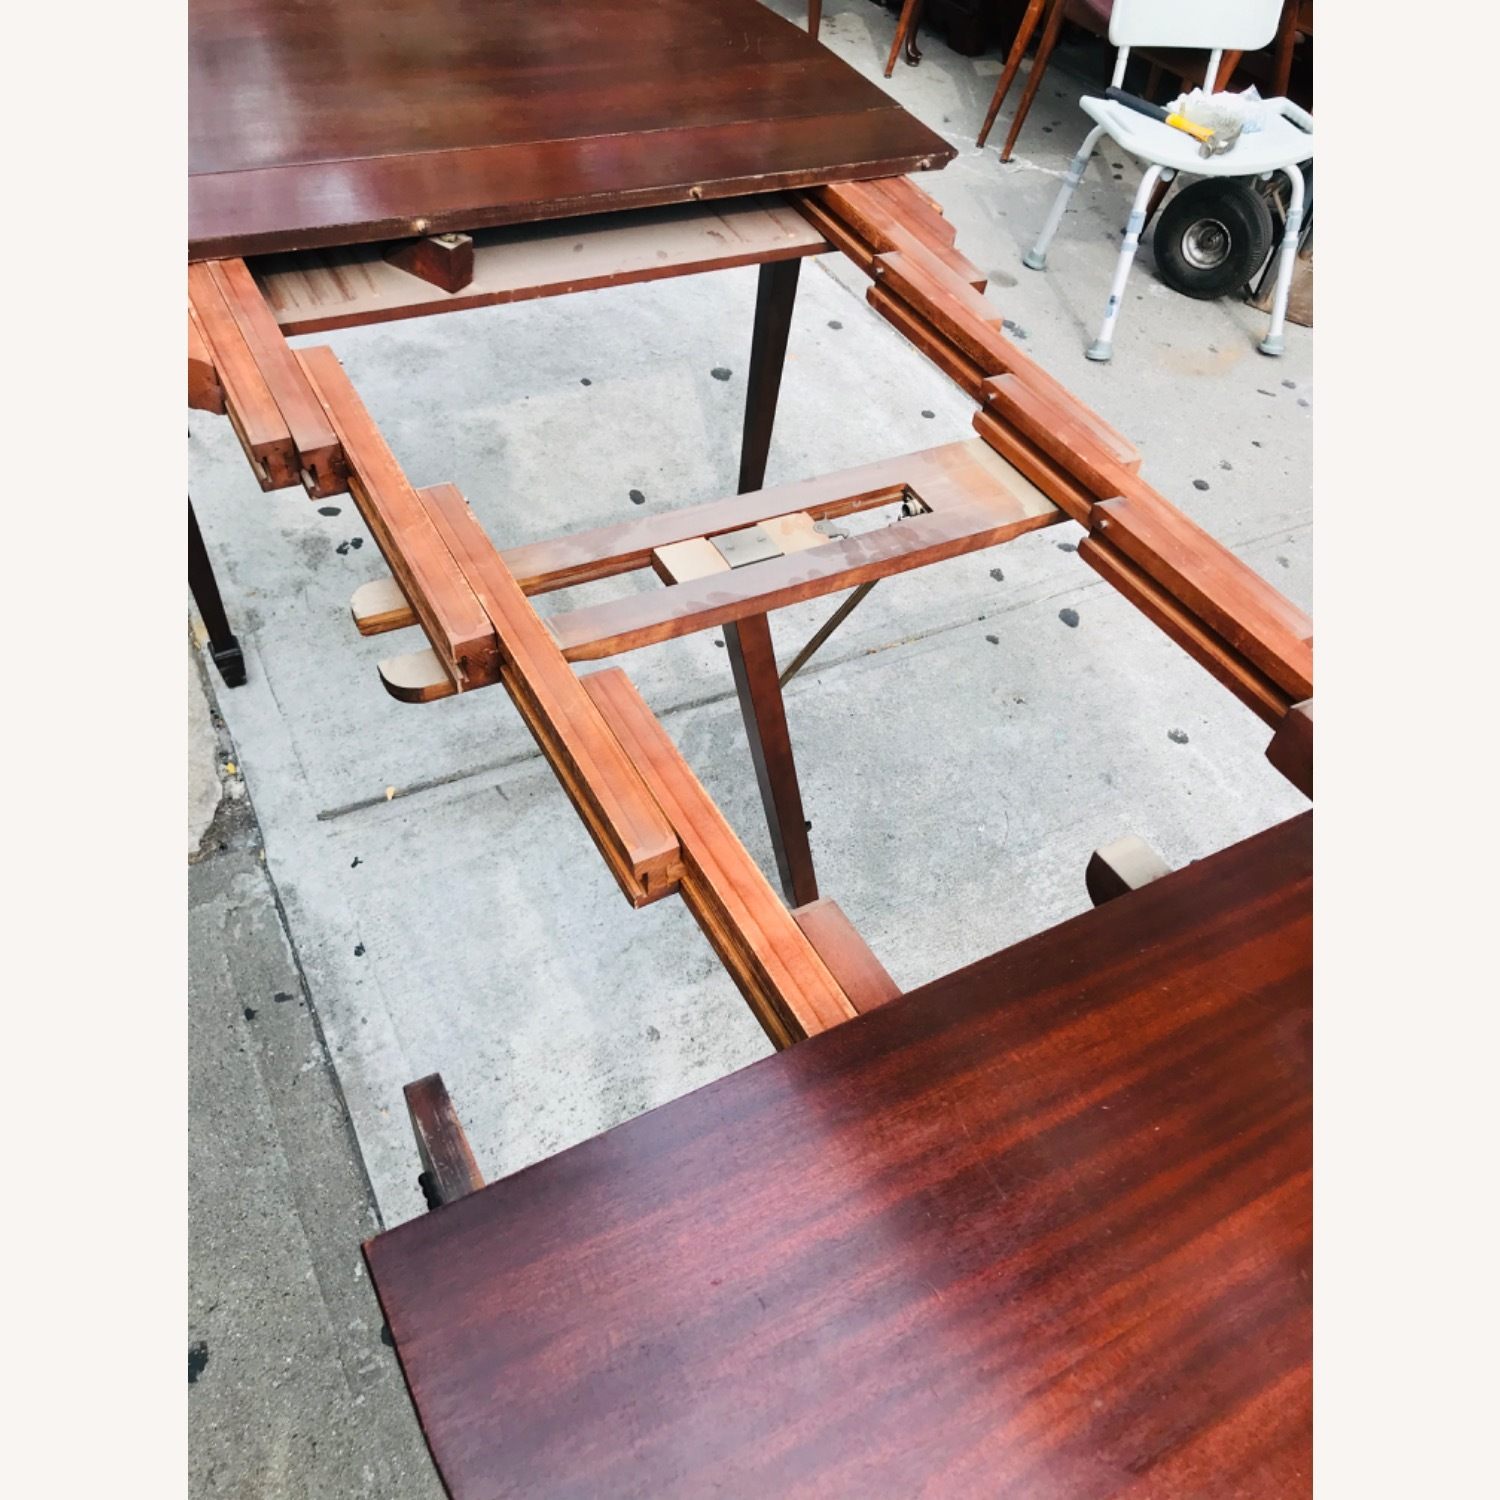 Antique 1920s Mahogany Table w/3 Leaves  - image-25